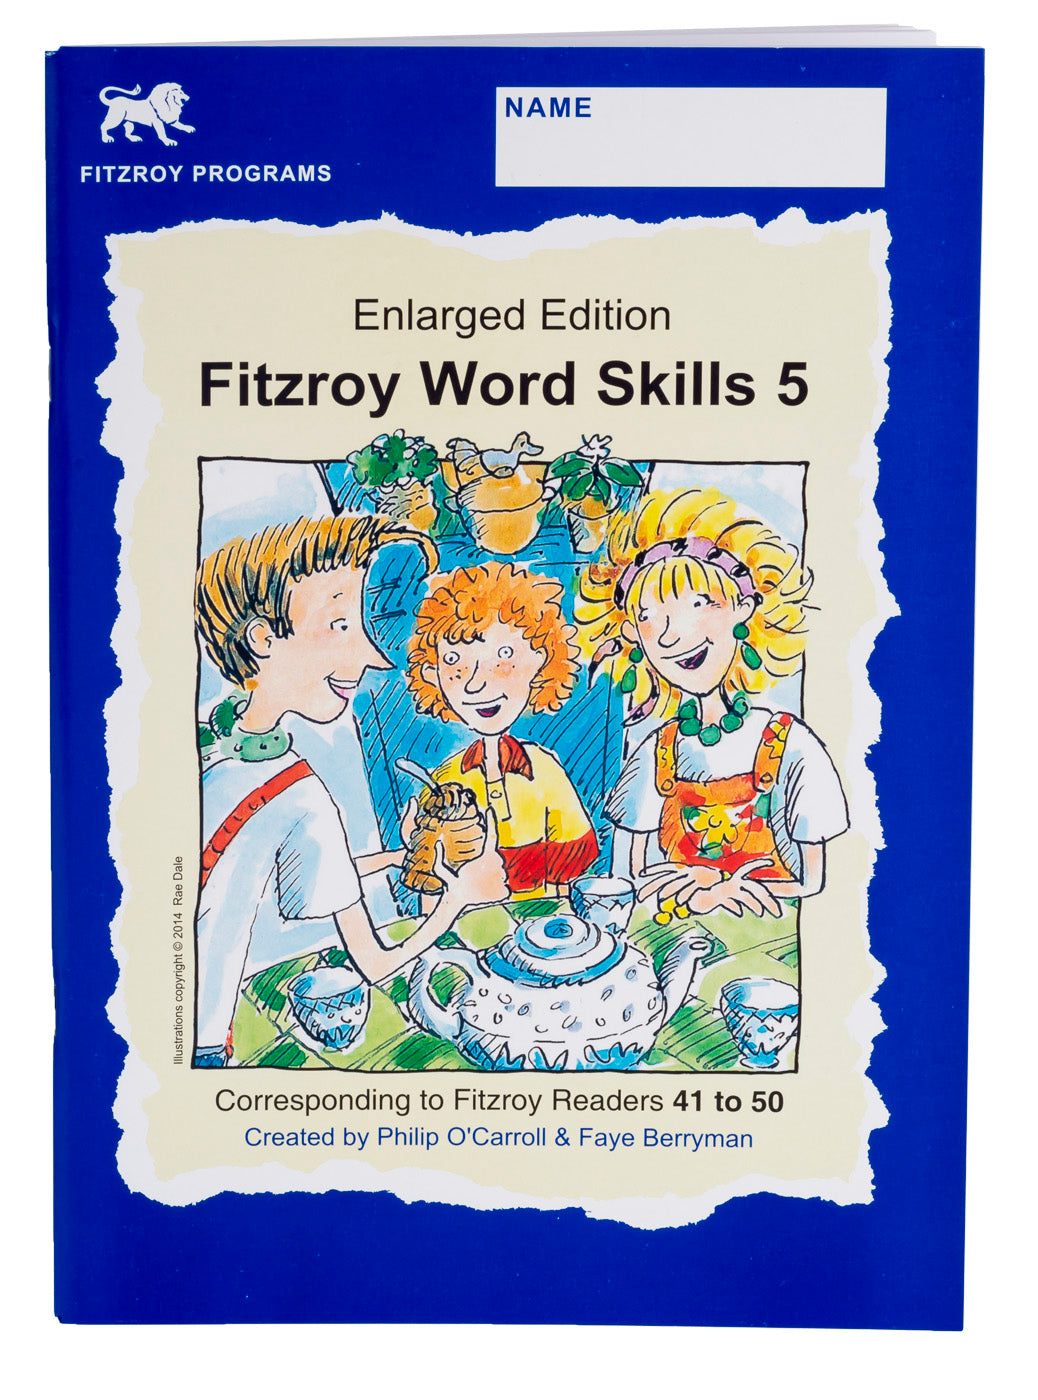 Fitzroy Word Skills 5 - Reader levels 41-50